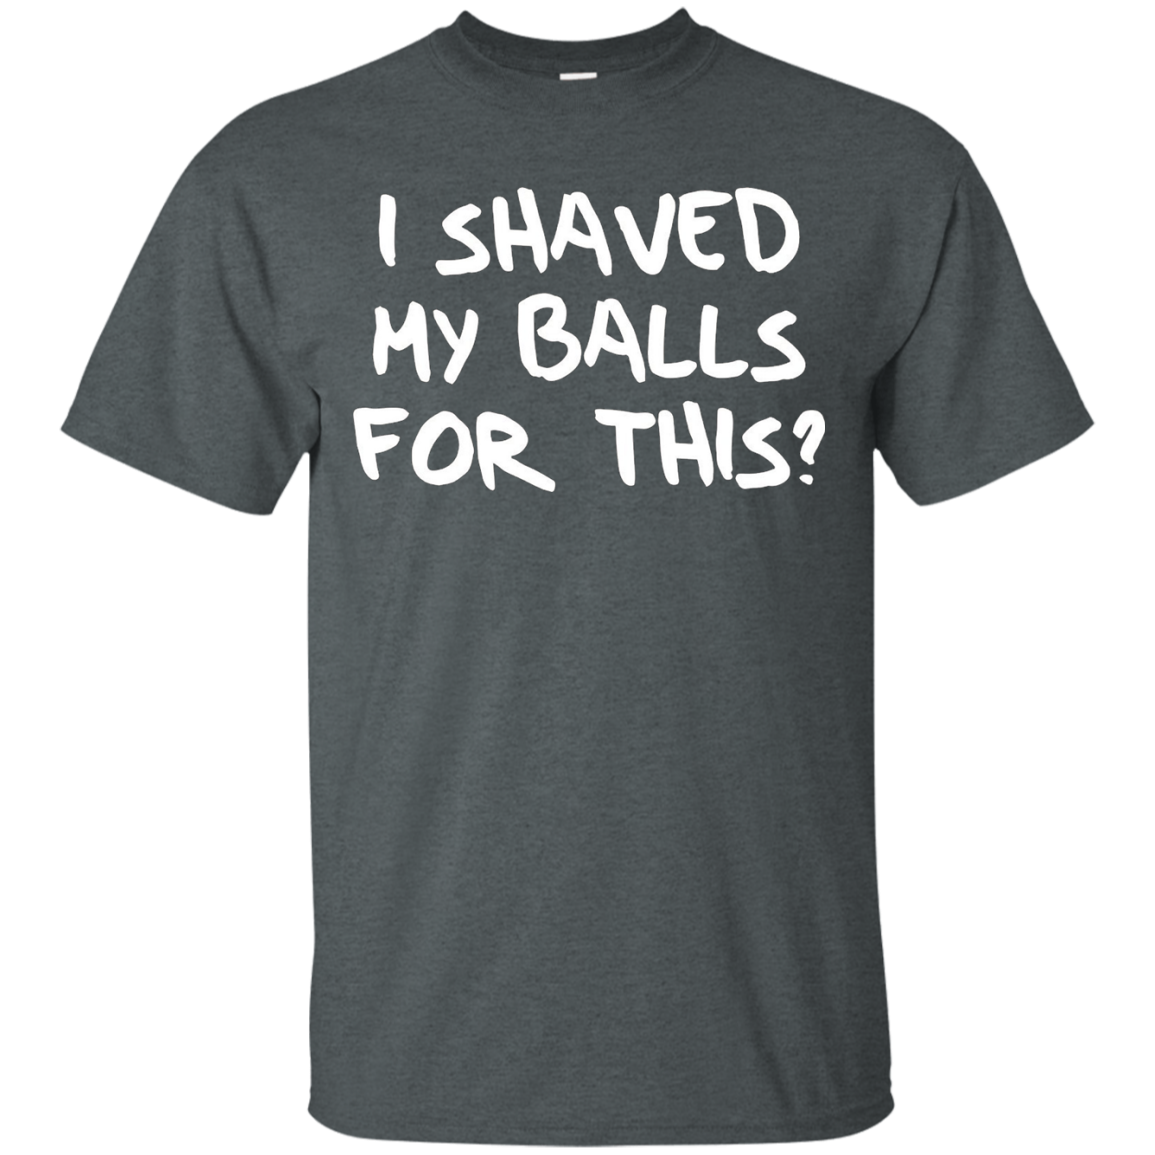 I shaved my balls for this shirt